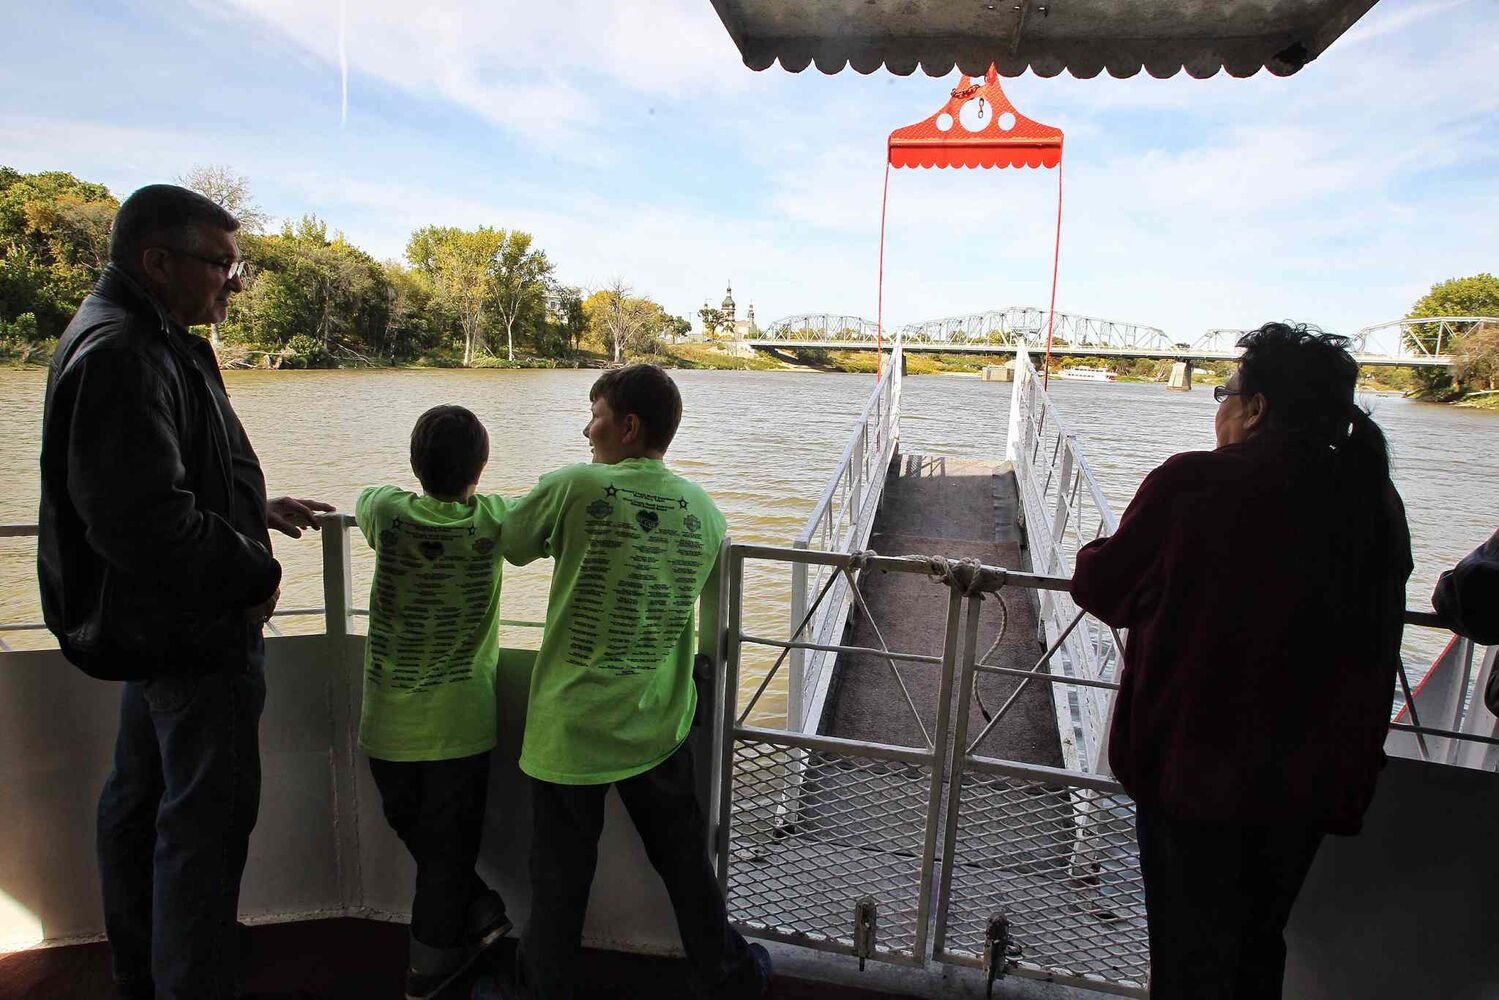 Passengers check out the sights along the river as the Paddlewheel Queen takes its last cruise. (Mike Deal / Winnipeg Free Press)